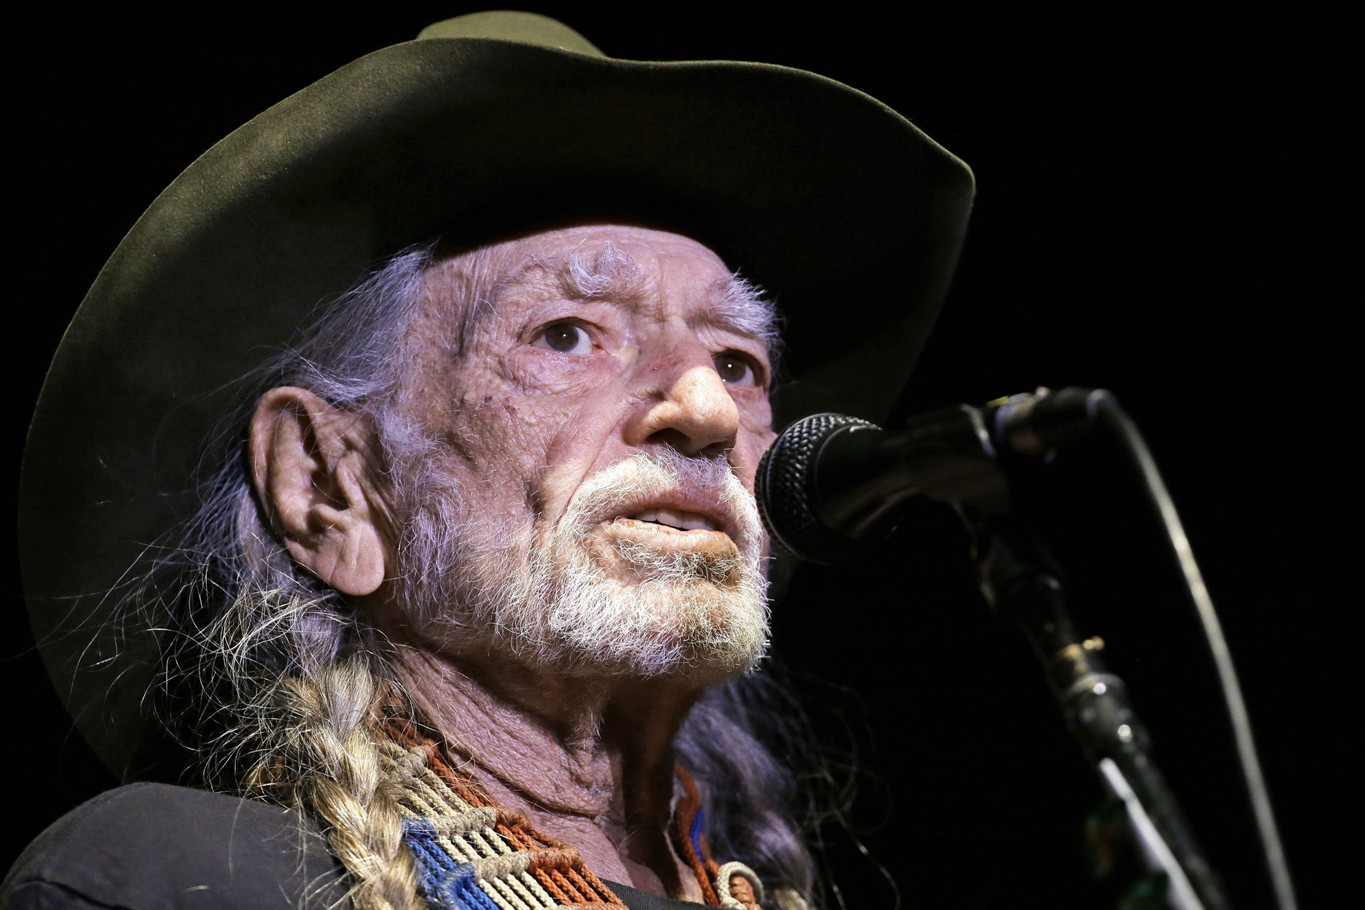 Willie Nelson Cuts Show Short, Cancels Upcoming Dates, After Suffering Breathing Difficulties